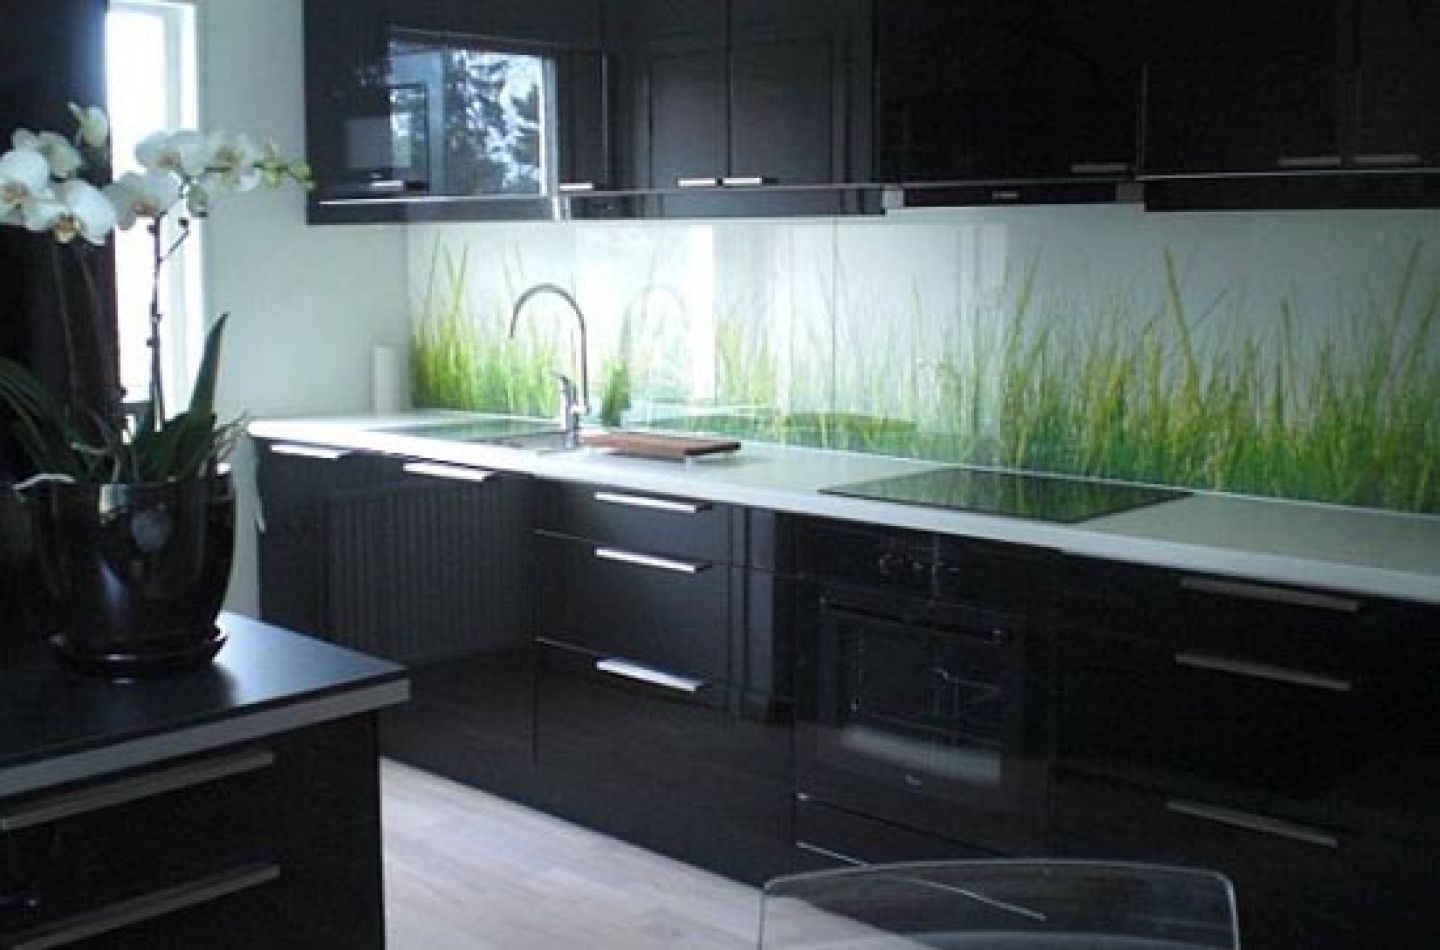 Model Black Kitchen Cabinets Are Simple But Very Functional Combined More  Natural Lawn Ornaments